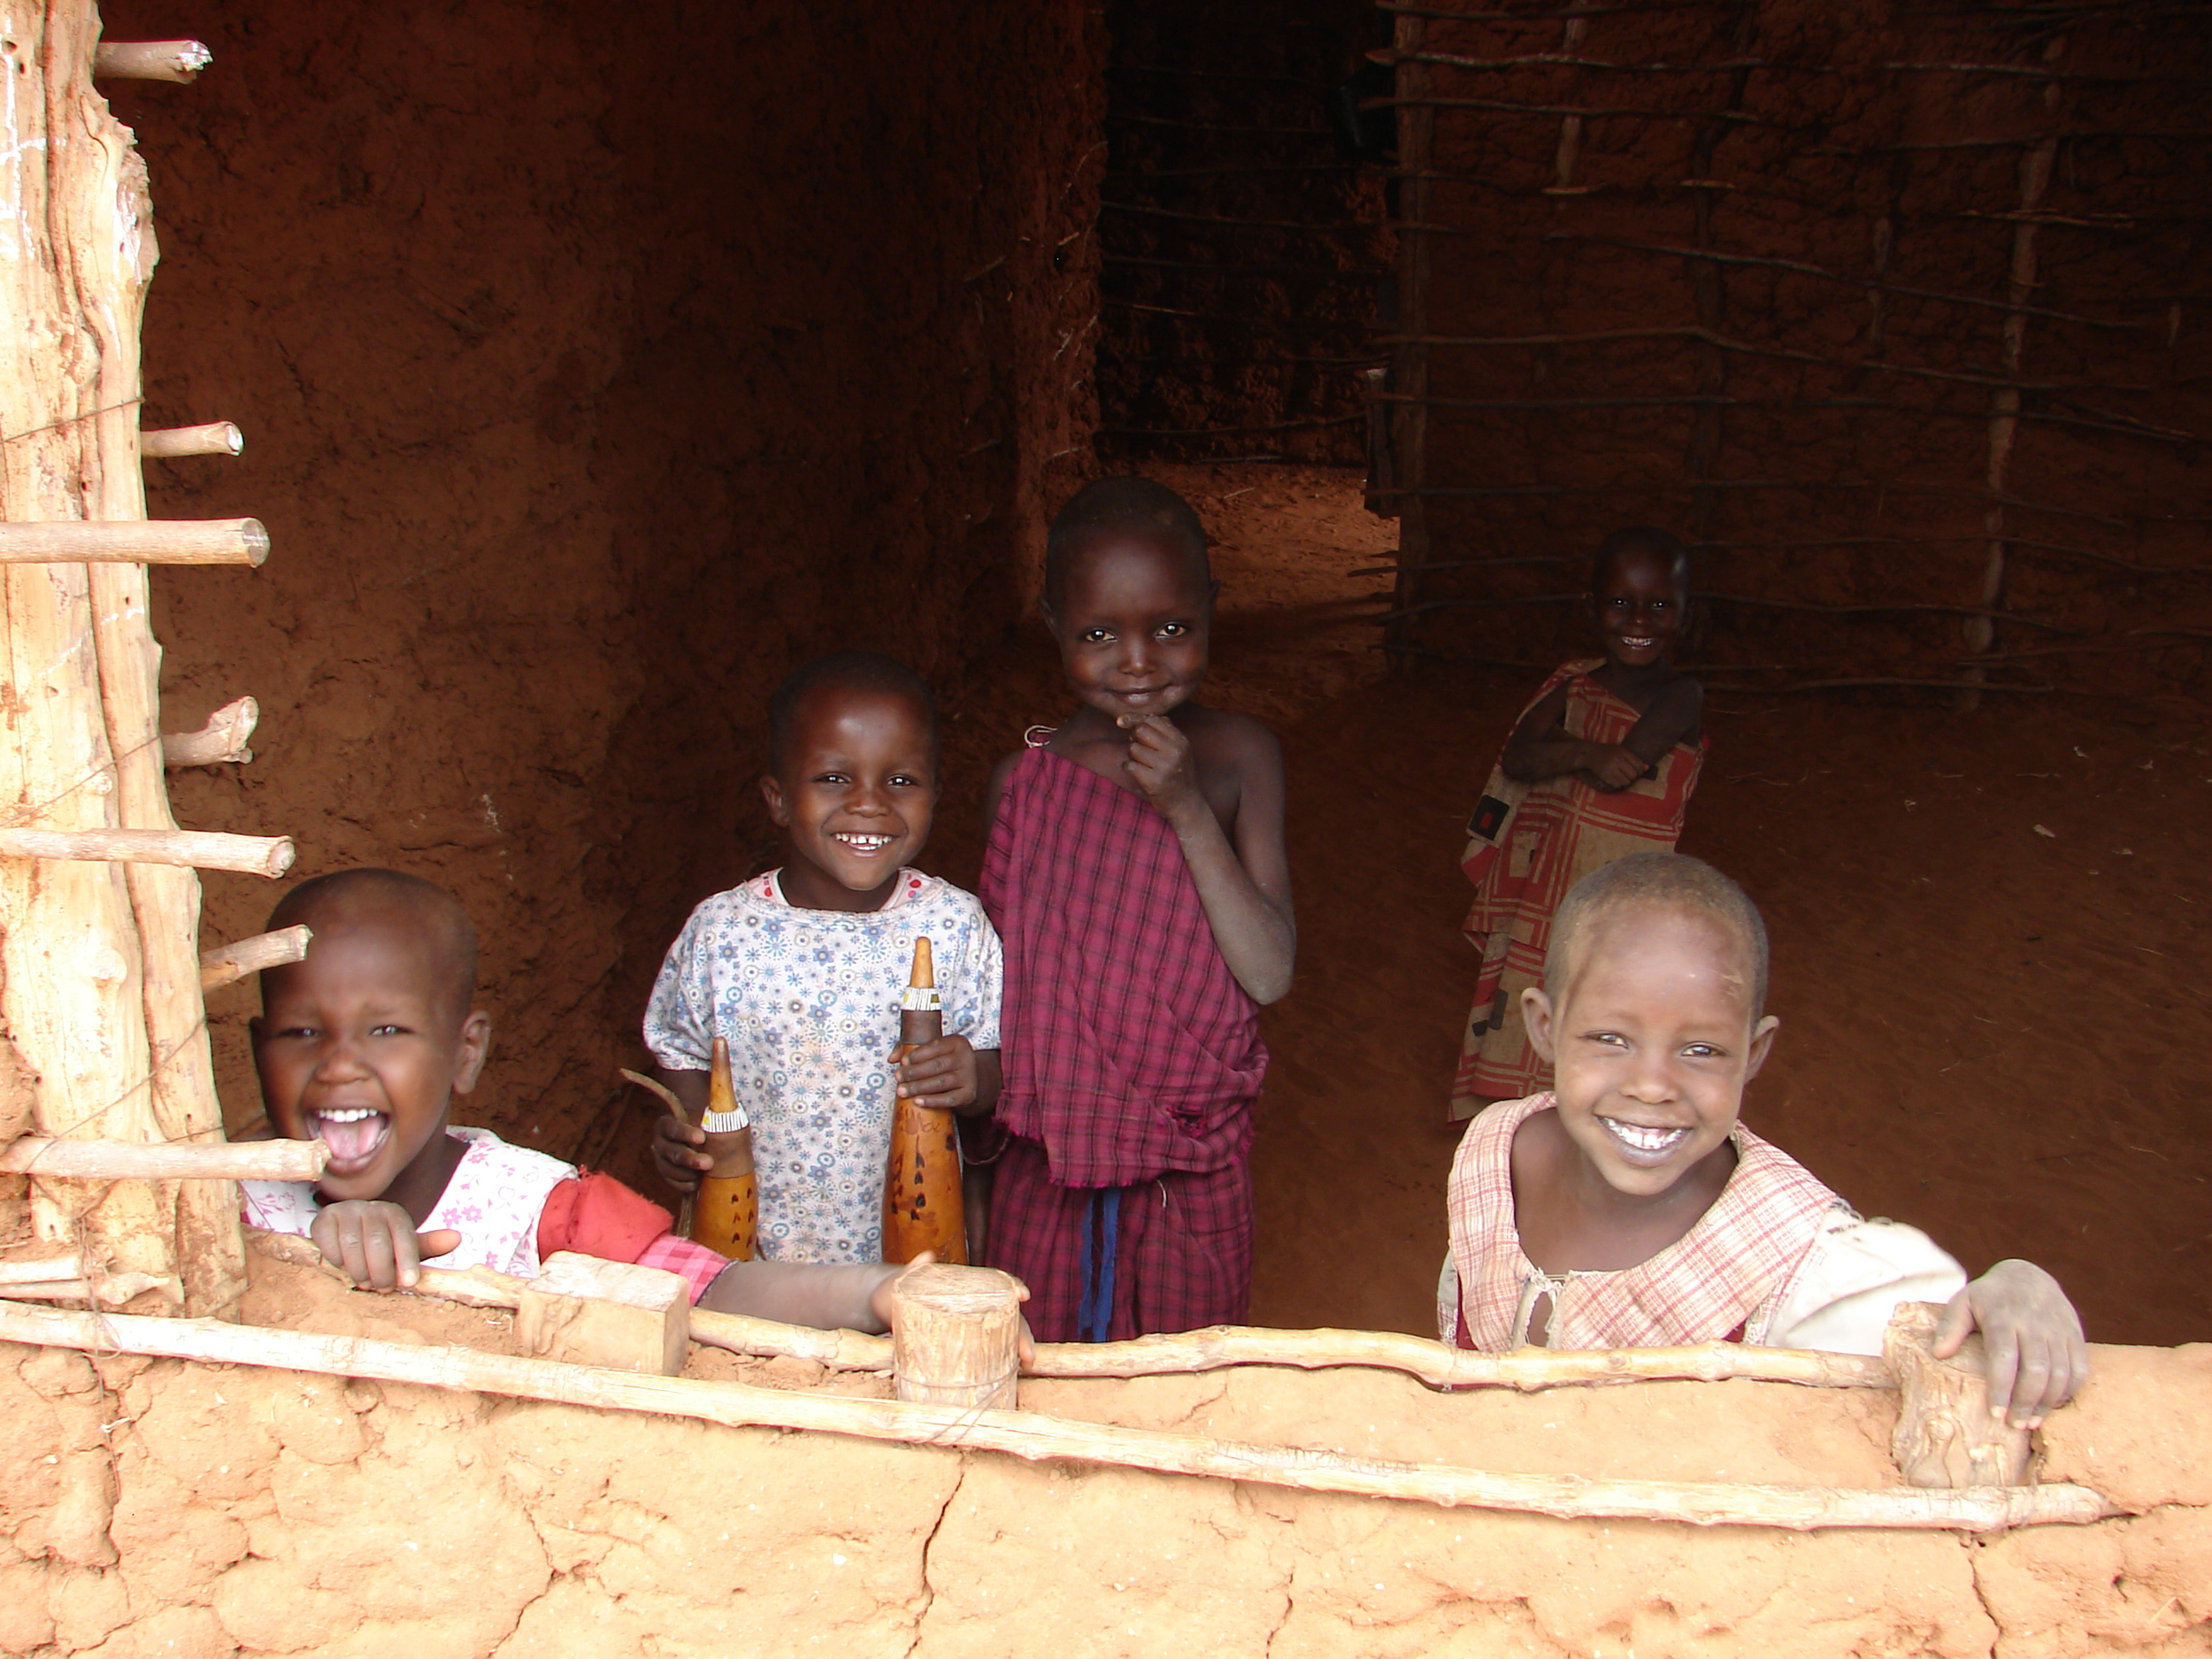 Masai children playing in their family home